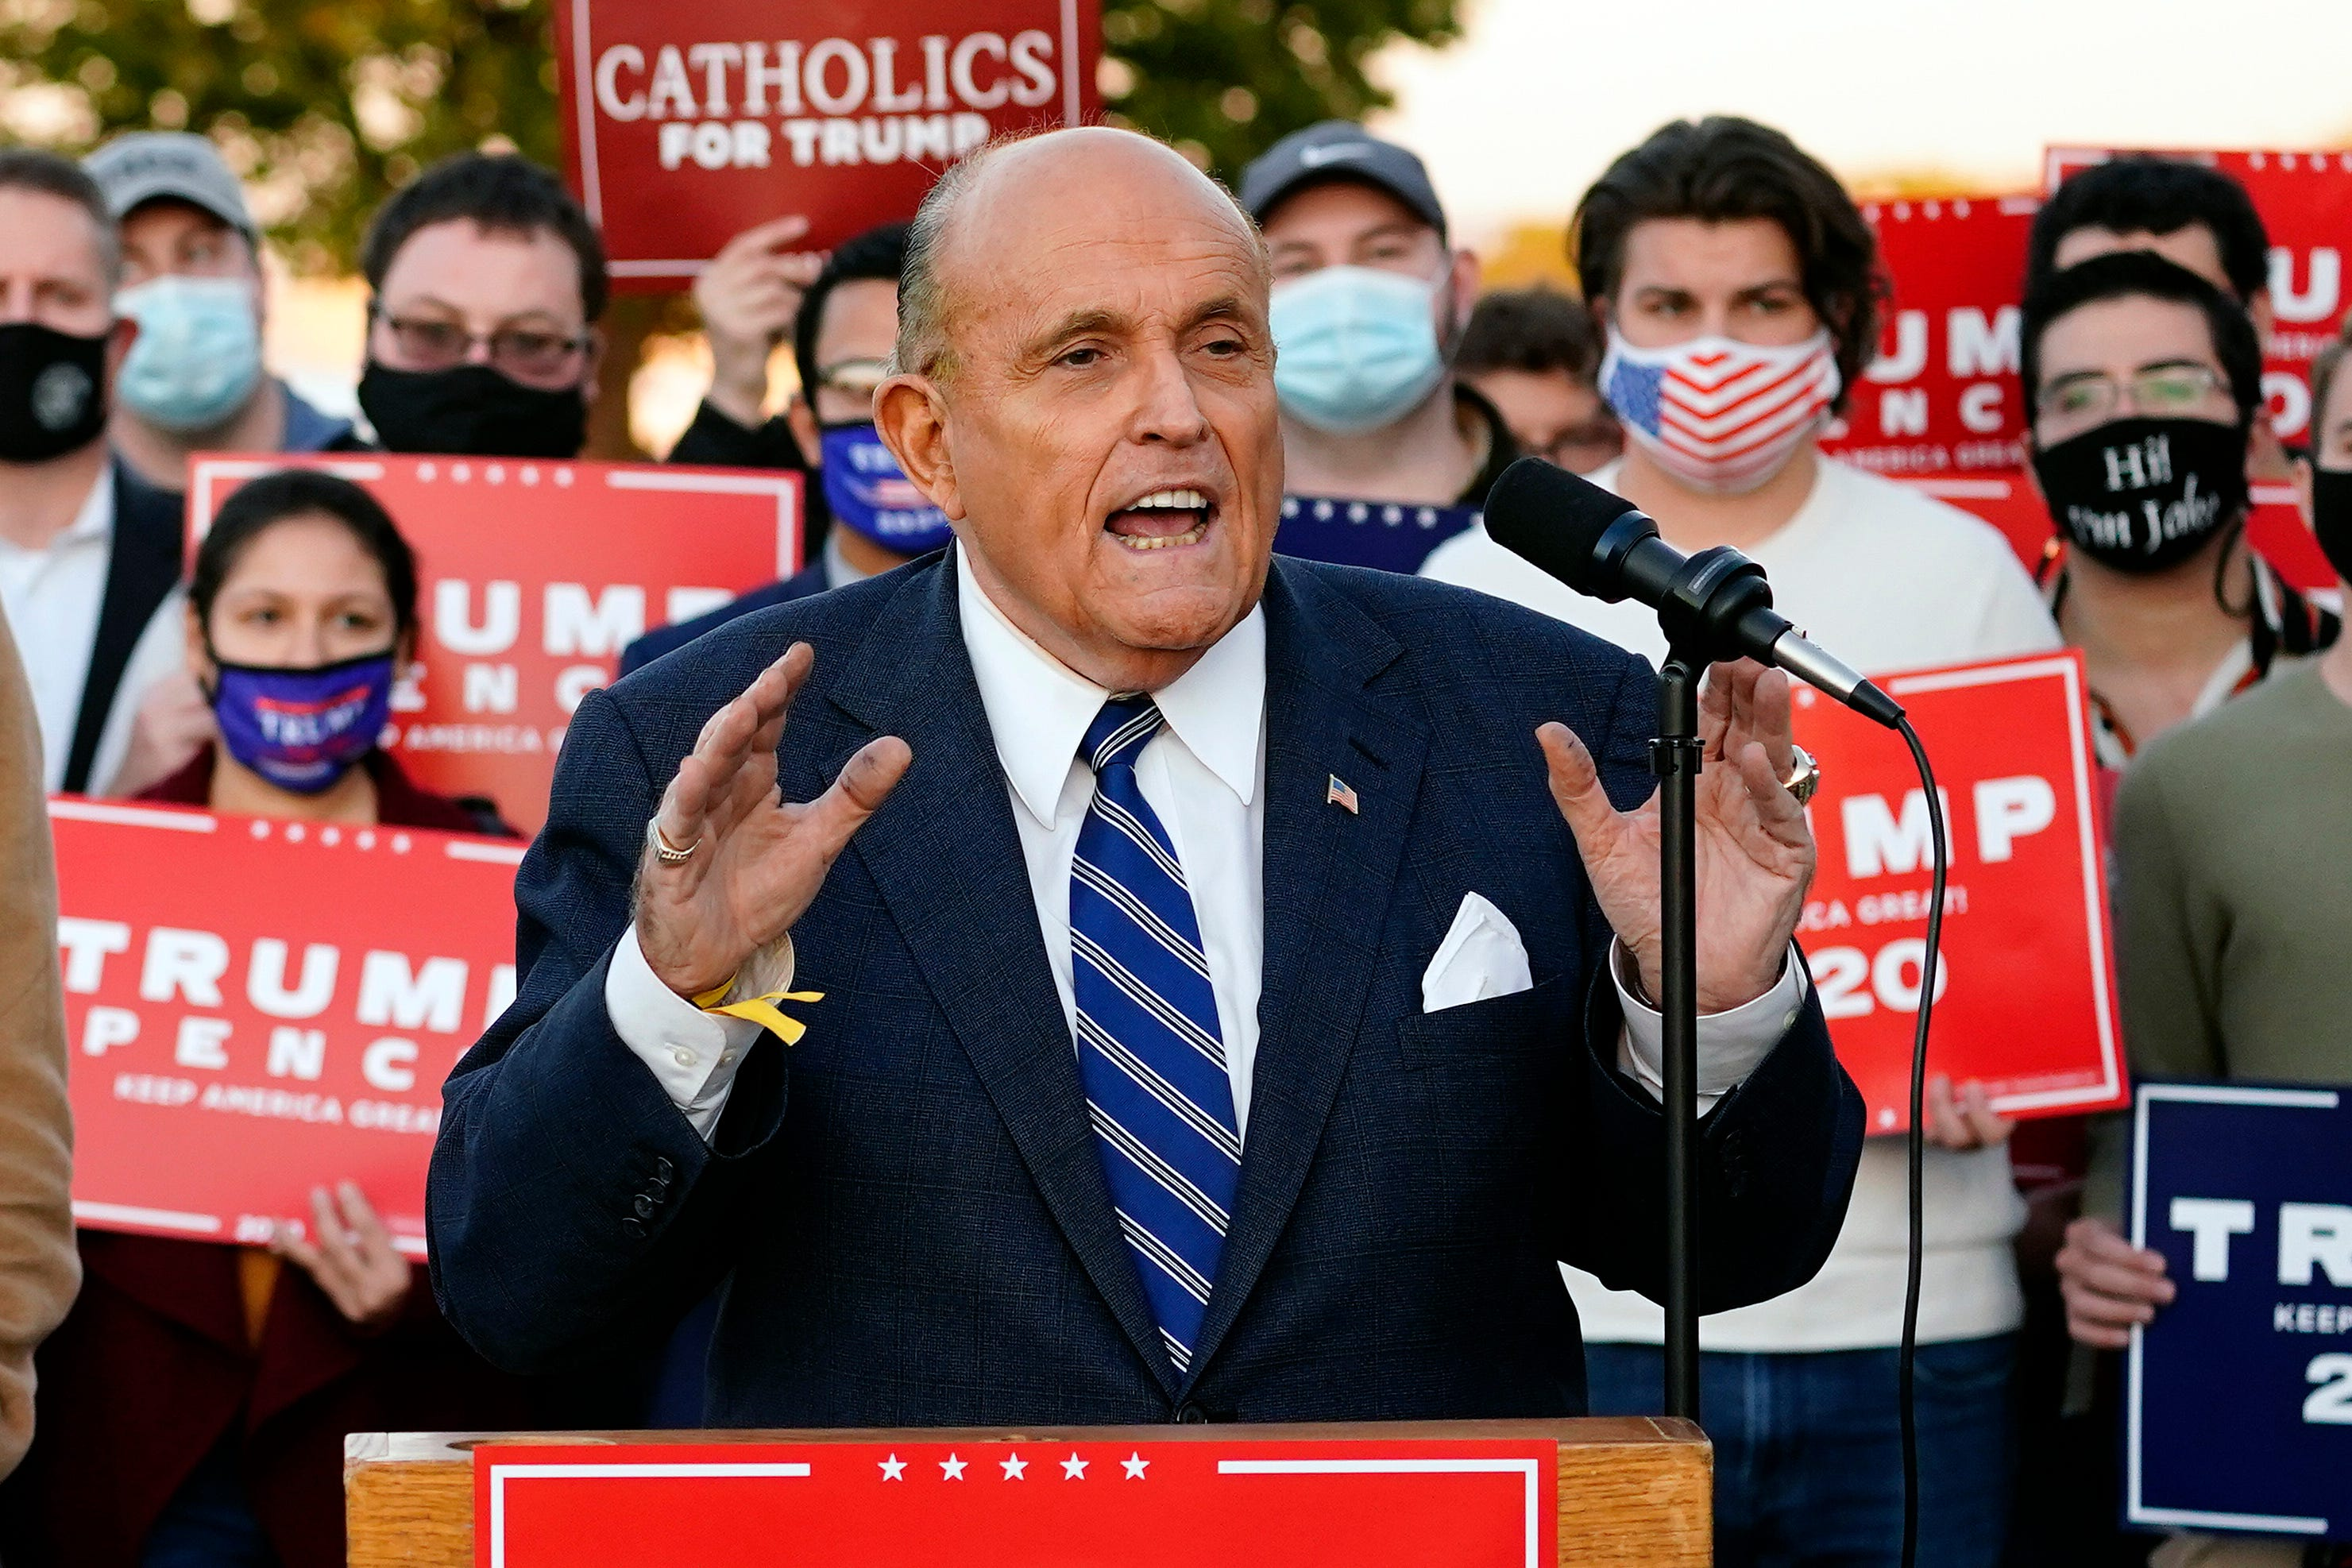 Politics live updates: Trump weighs joining Giuliani in Gettysburg to question election results – then cancels